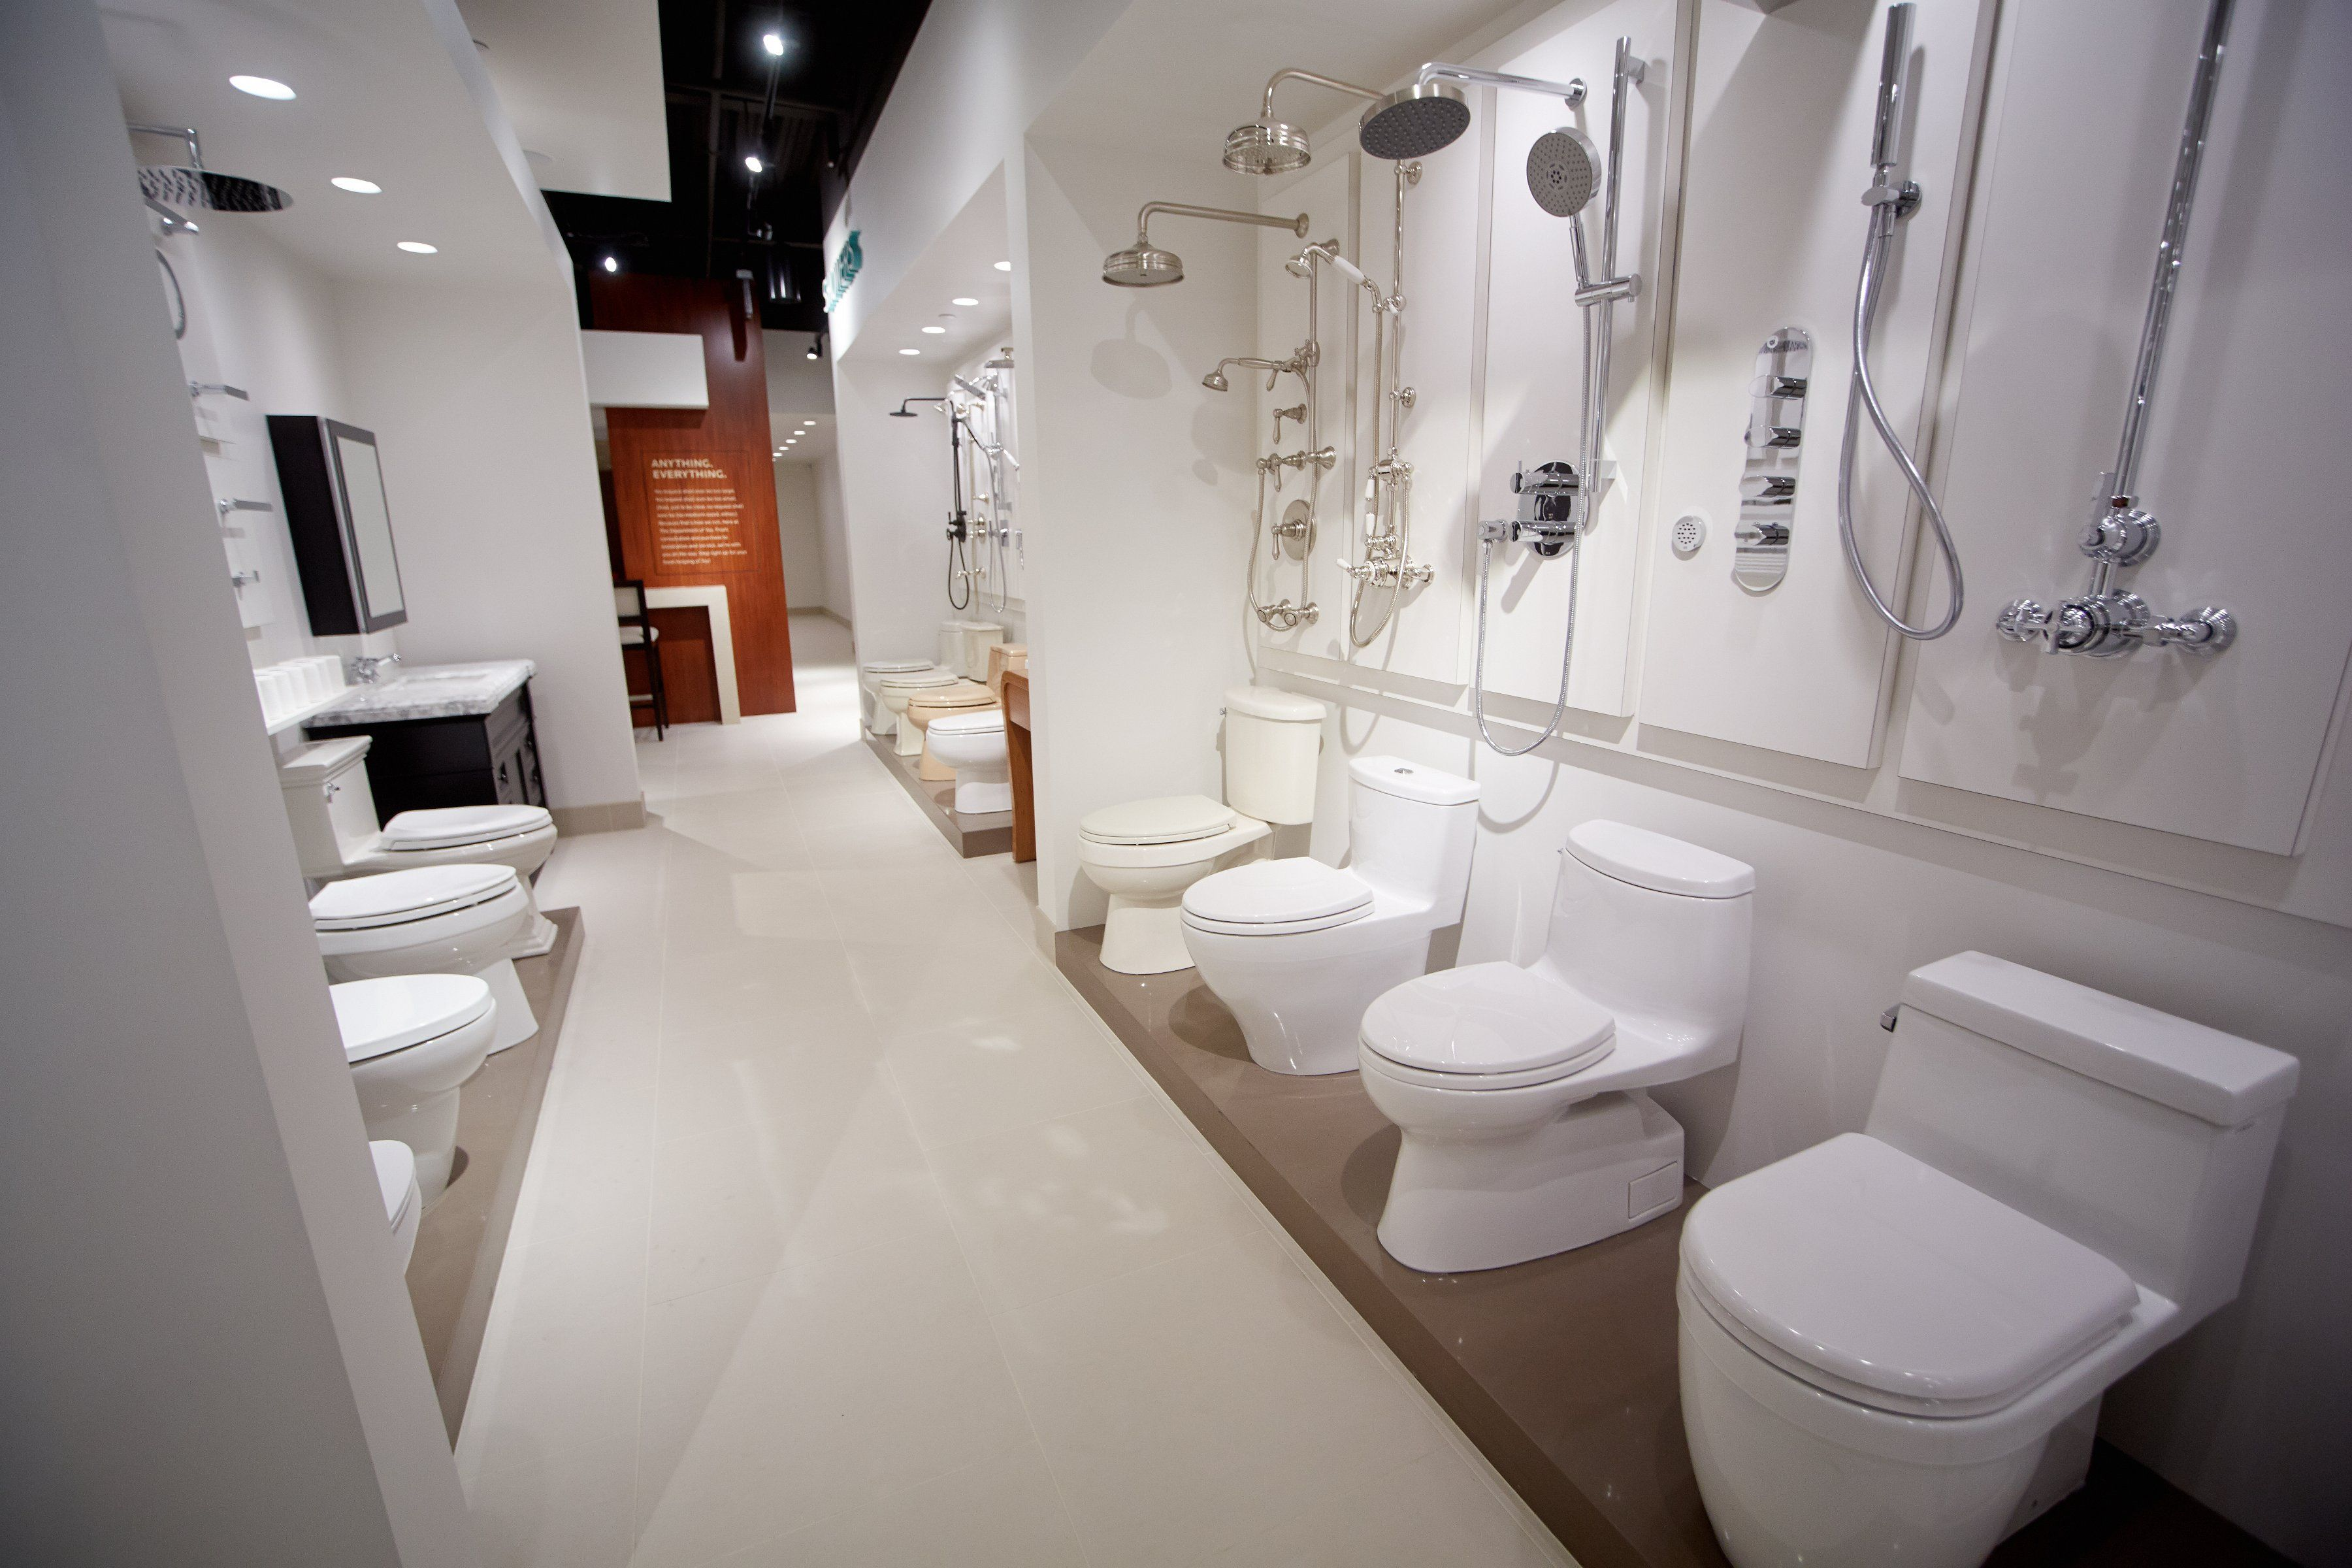 Toilets bathroom fixtures showerheads pirch utc pirch san diego pinterest bathroom Bathroom showrooms san francisco